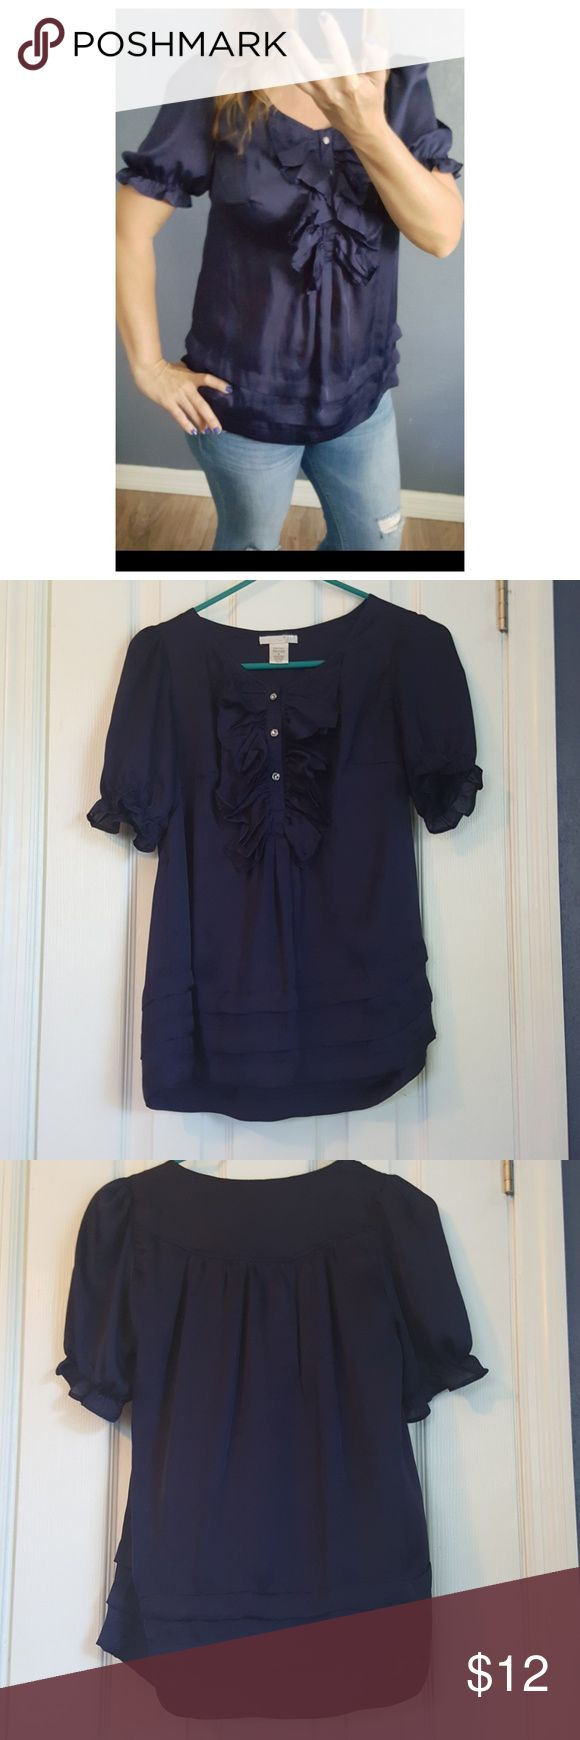 """Cute, Feminine Navy Career or Casual Top EUC This top is perfect for any season; great for casual or career. It's a very soft navy color,  light, cooling fabric 100% poly. It has ruffle, jewel button detail with puffy cap sleeves. Lots of darting,  layered look detail on bottom hem,  as well, to make it very flattering and feminine.  No tears stains or odors. Its a size small but could fit size 6-10. I'm 135# 5'4"""" for size reference. Please ask any questions or shoot me an offer! Funkadelic…"""